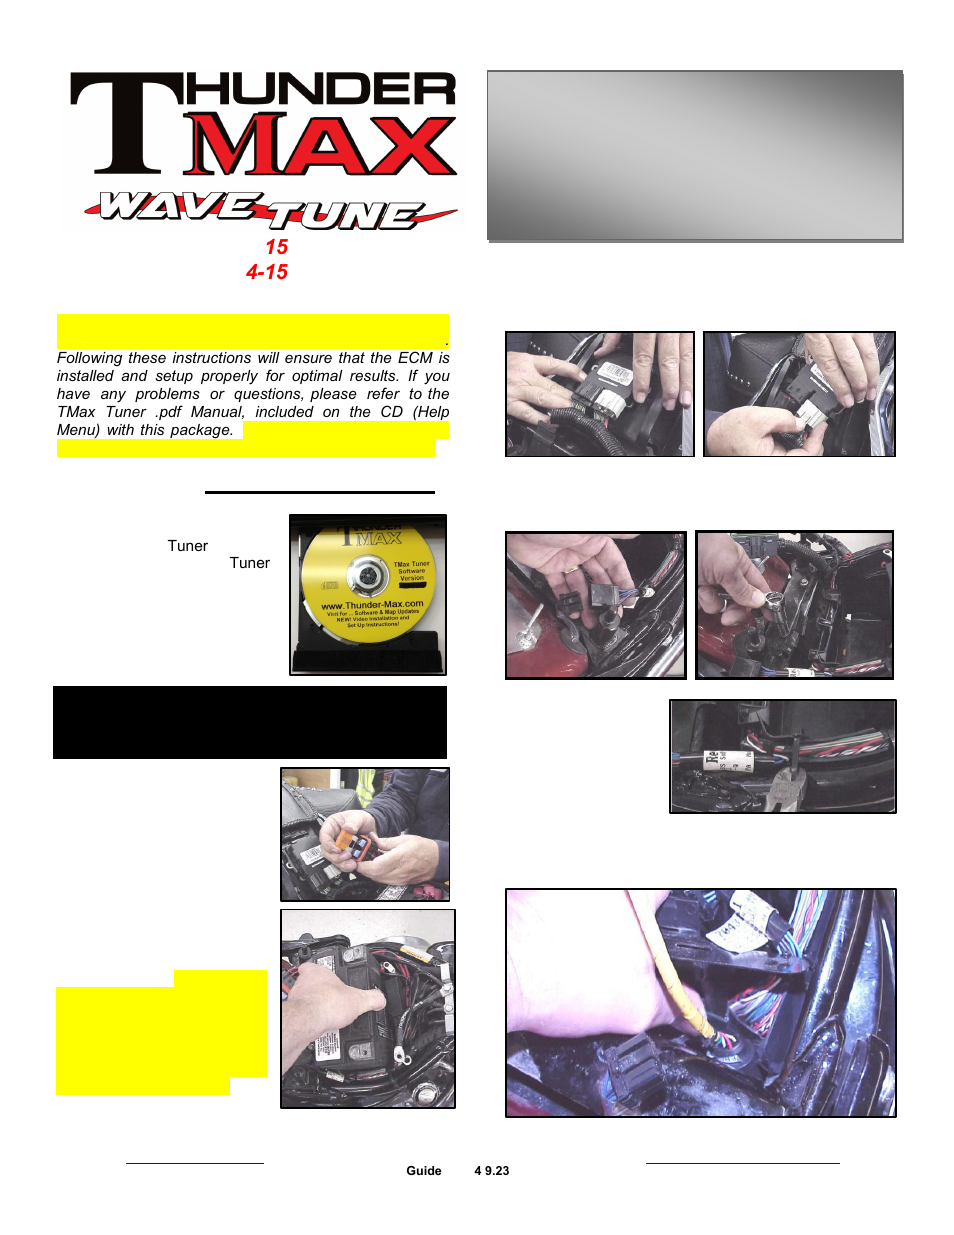 Thundermax Pn309 380 Sportster User Manual 9 Pages Also For Pn Motorcycle Wiring Harness Connectors 382 361 Cable Throttle 464 Xr1200 485